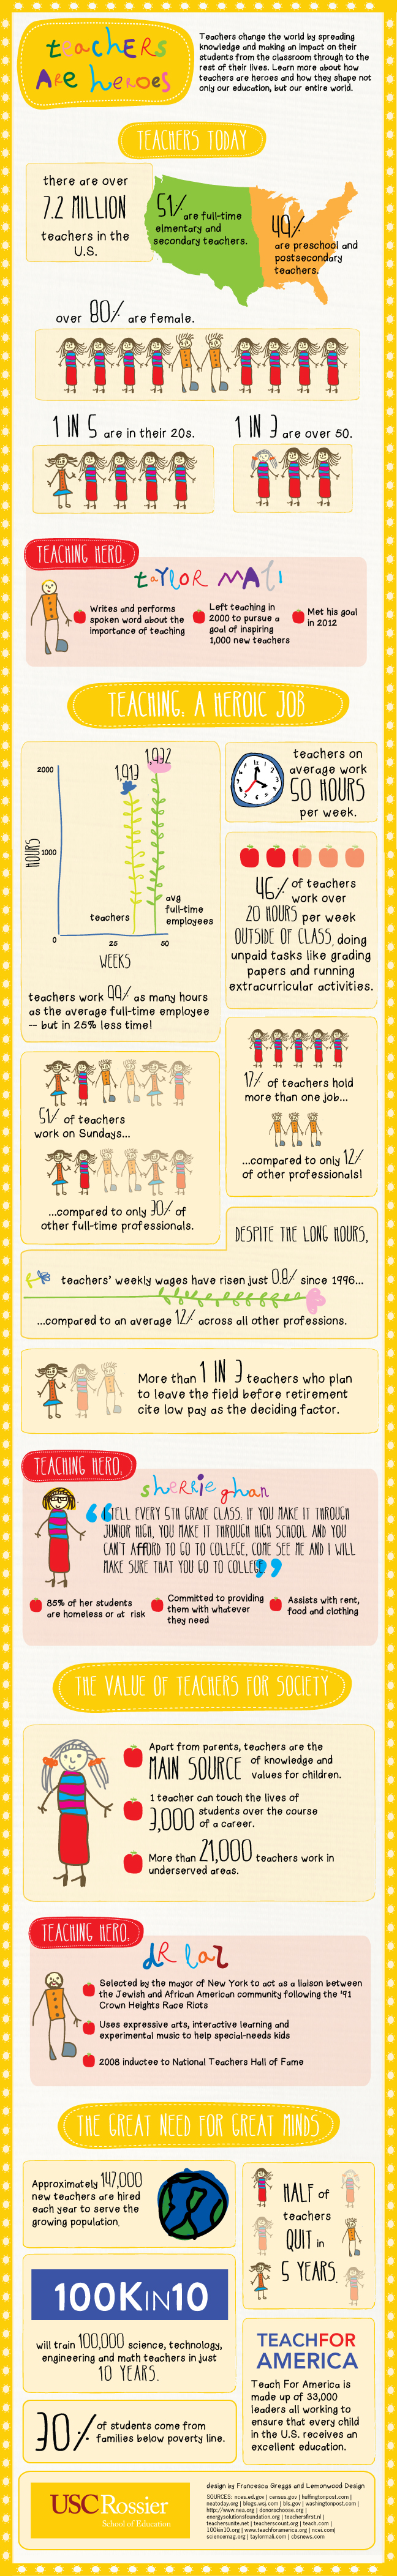 Teachers-Are-Heroes-Infographic-Infographic